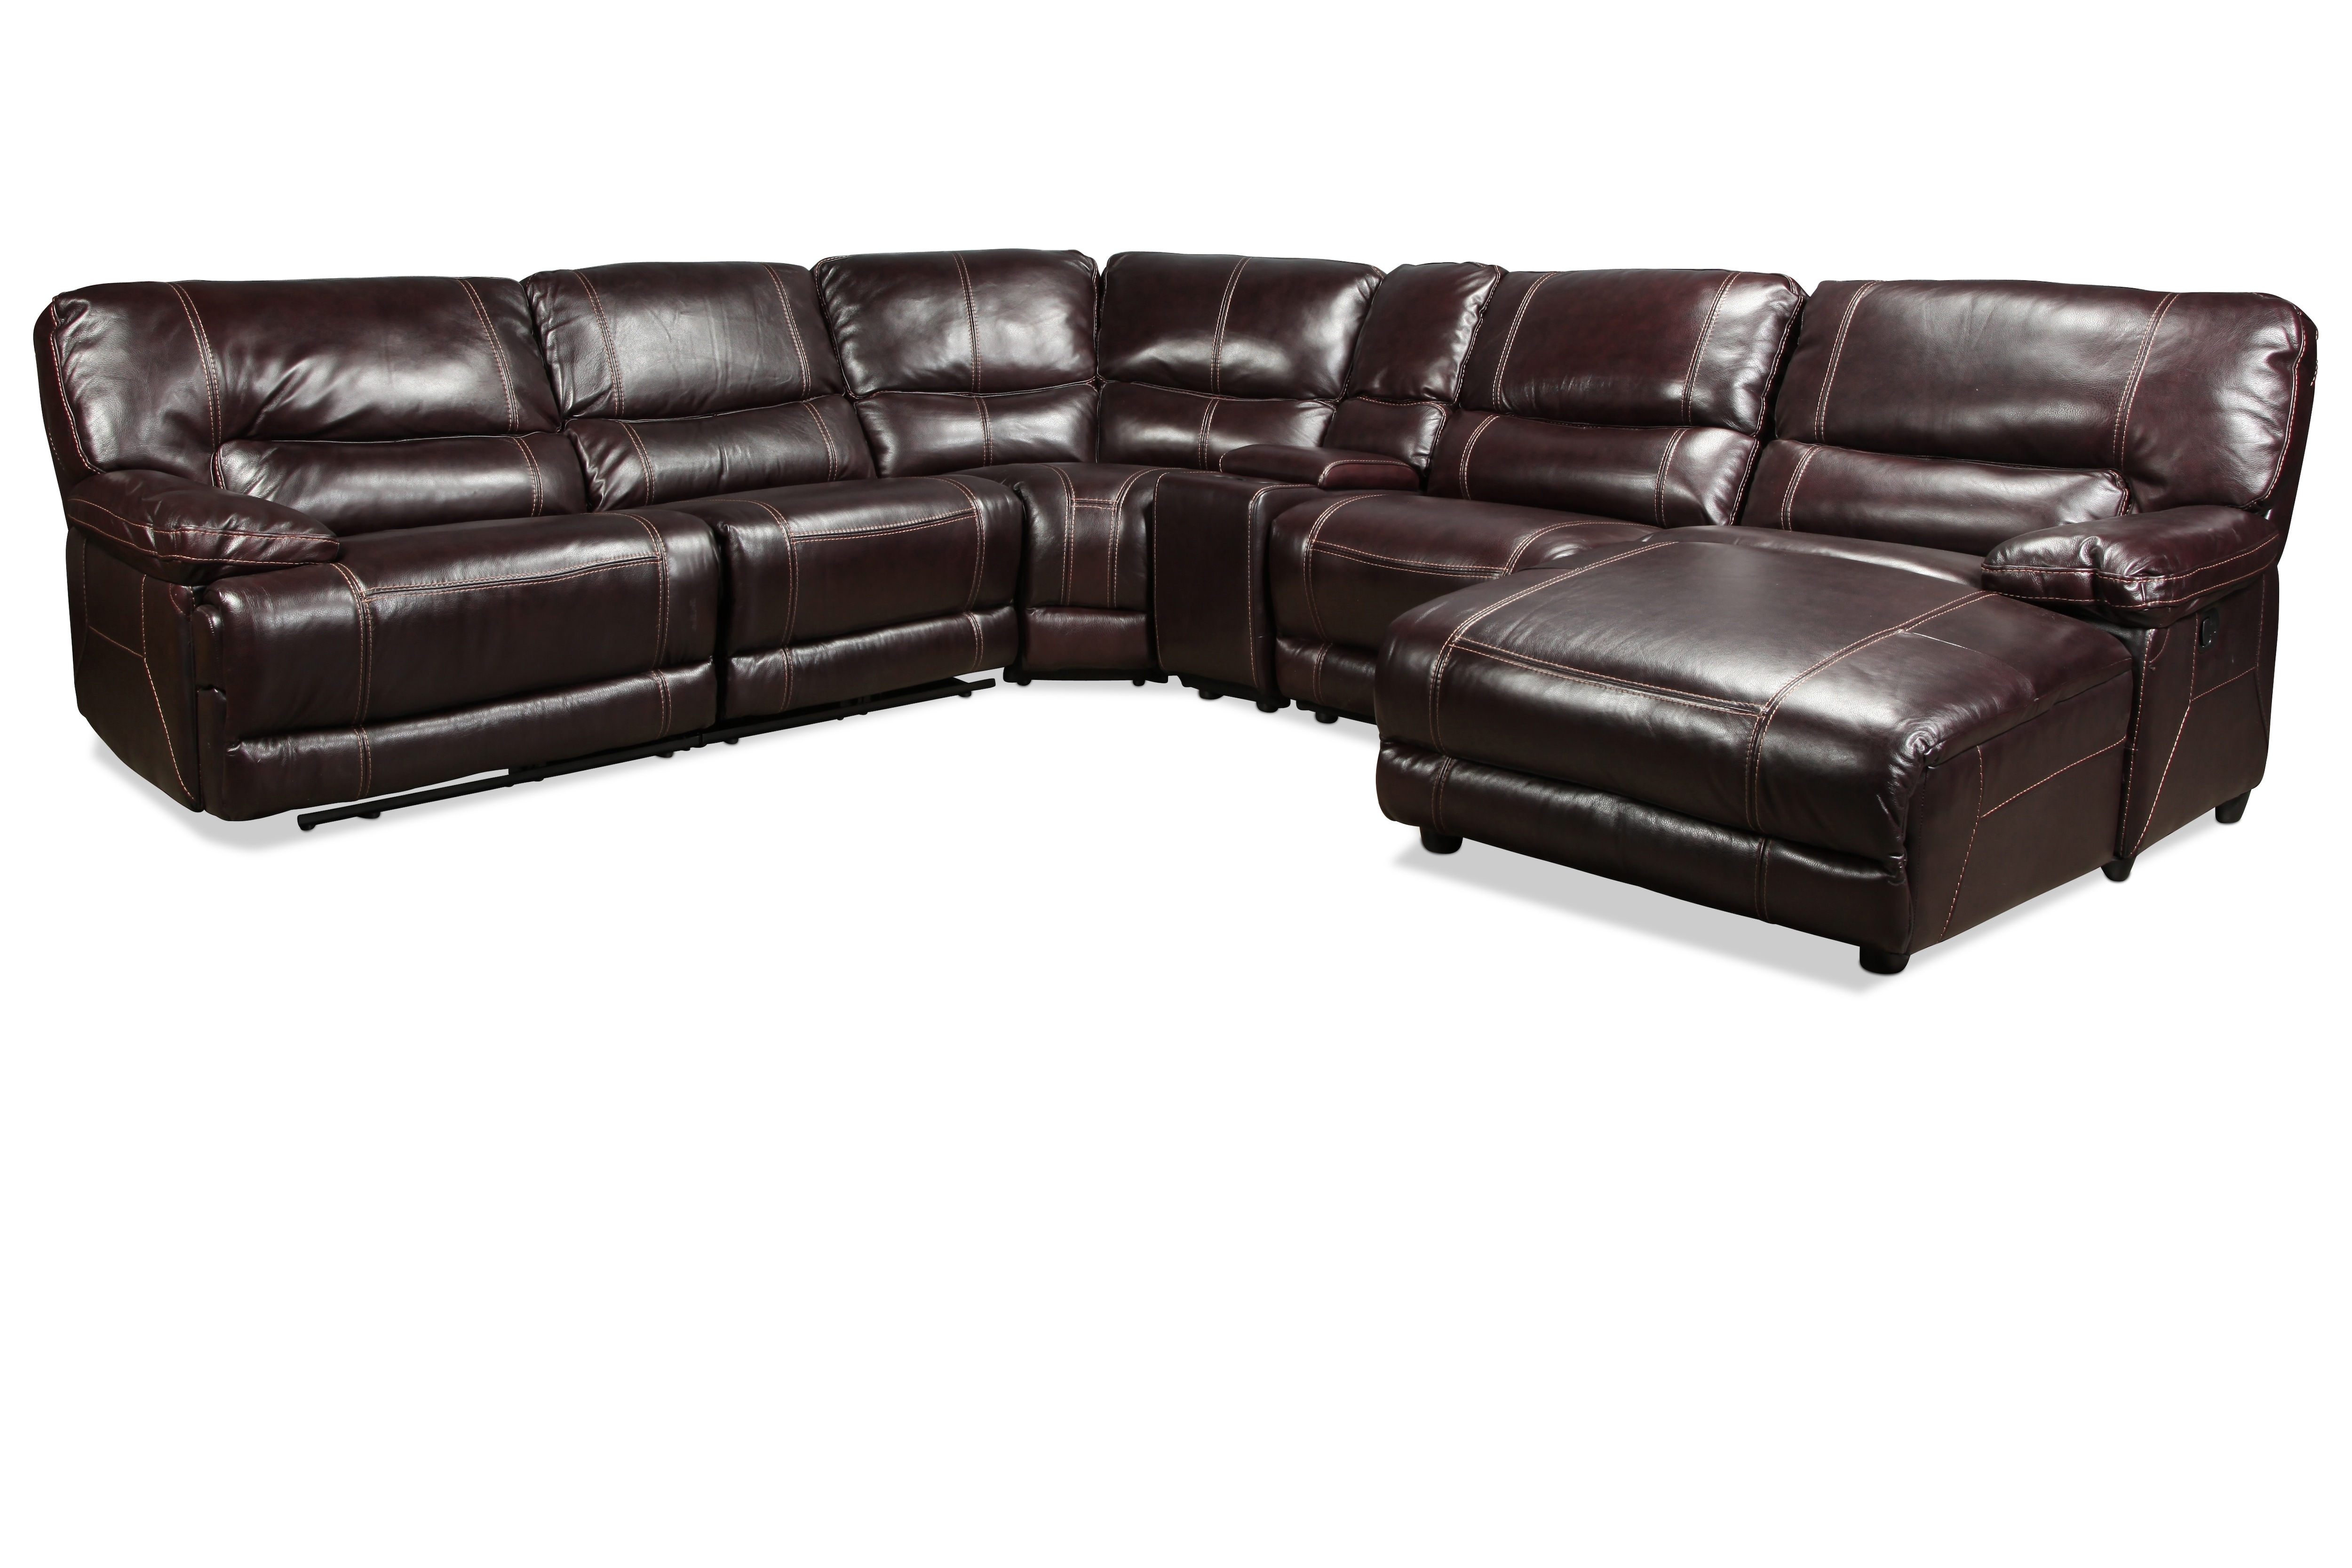 Sectionals | Levin Furniture Regarding Josephine 2 Piece Sectionals With Laf Sofa (Image 25 of 25)